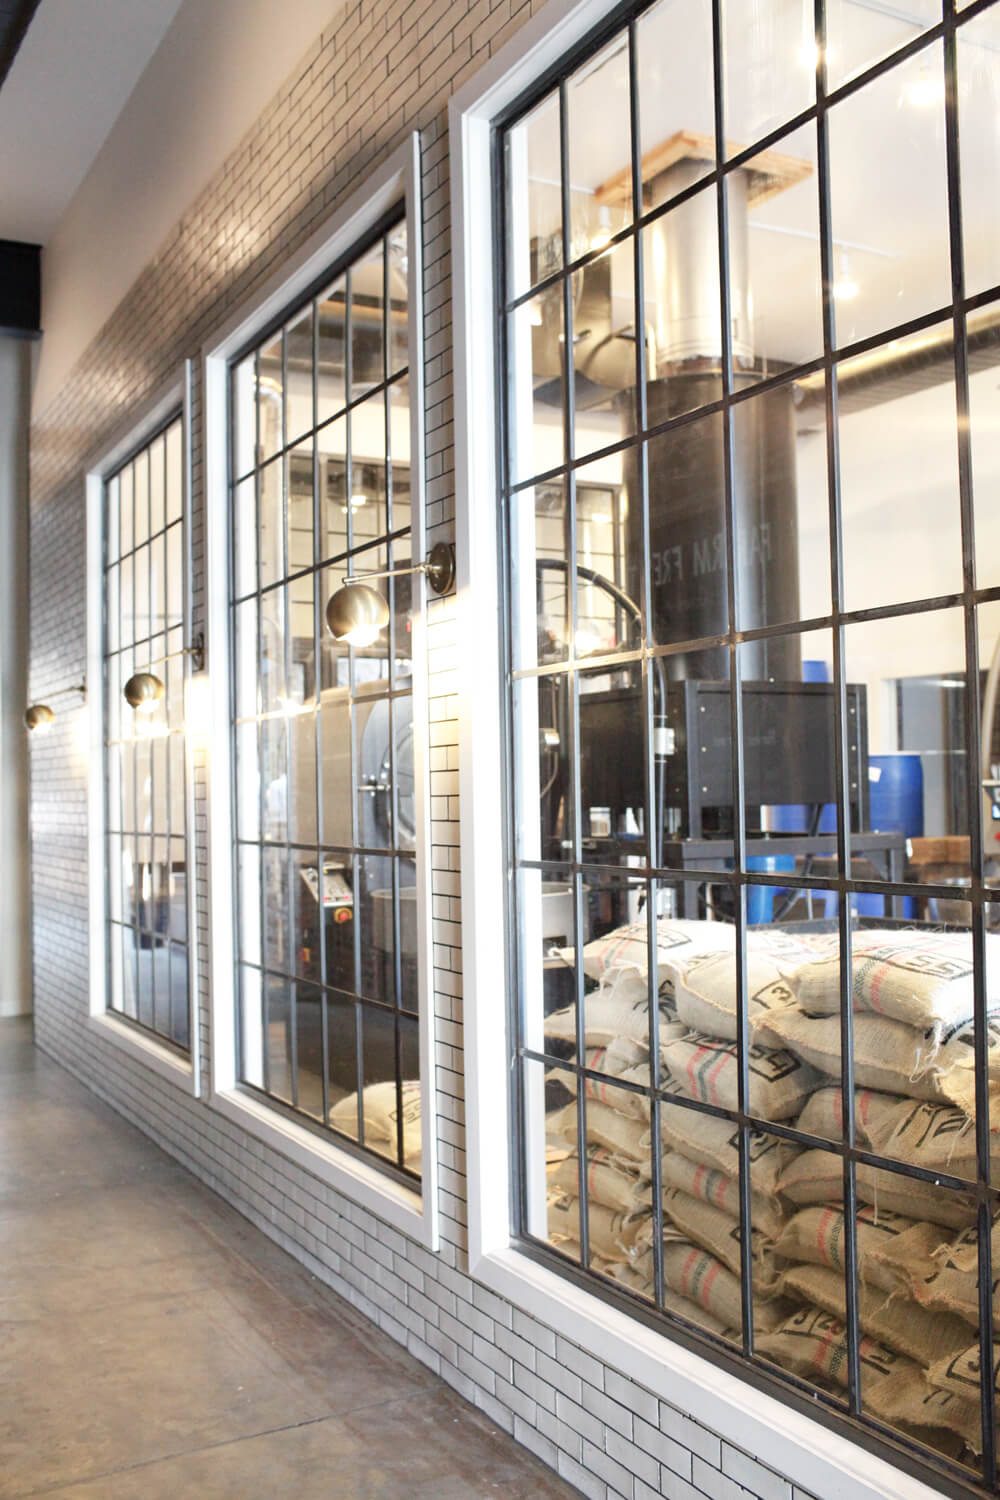 Coffee break williamsburg coffee shop Devoción new york city corporate catwalk 10